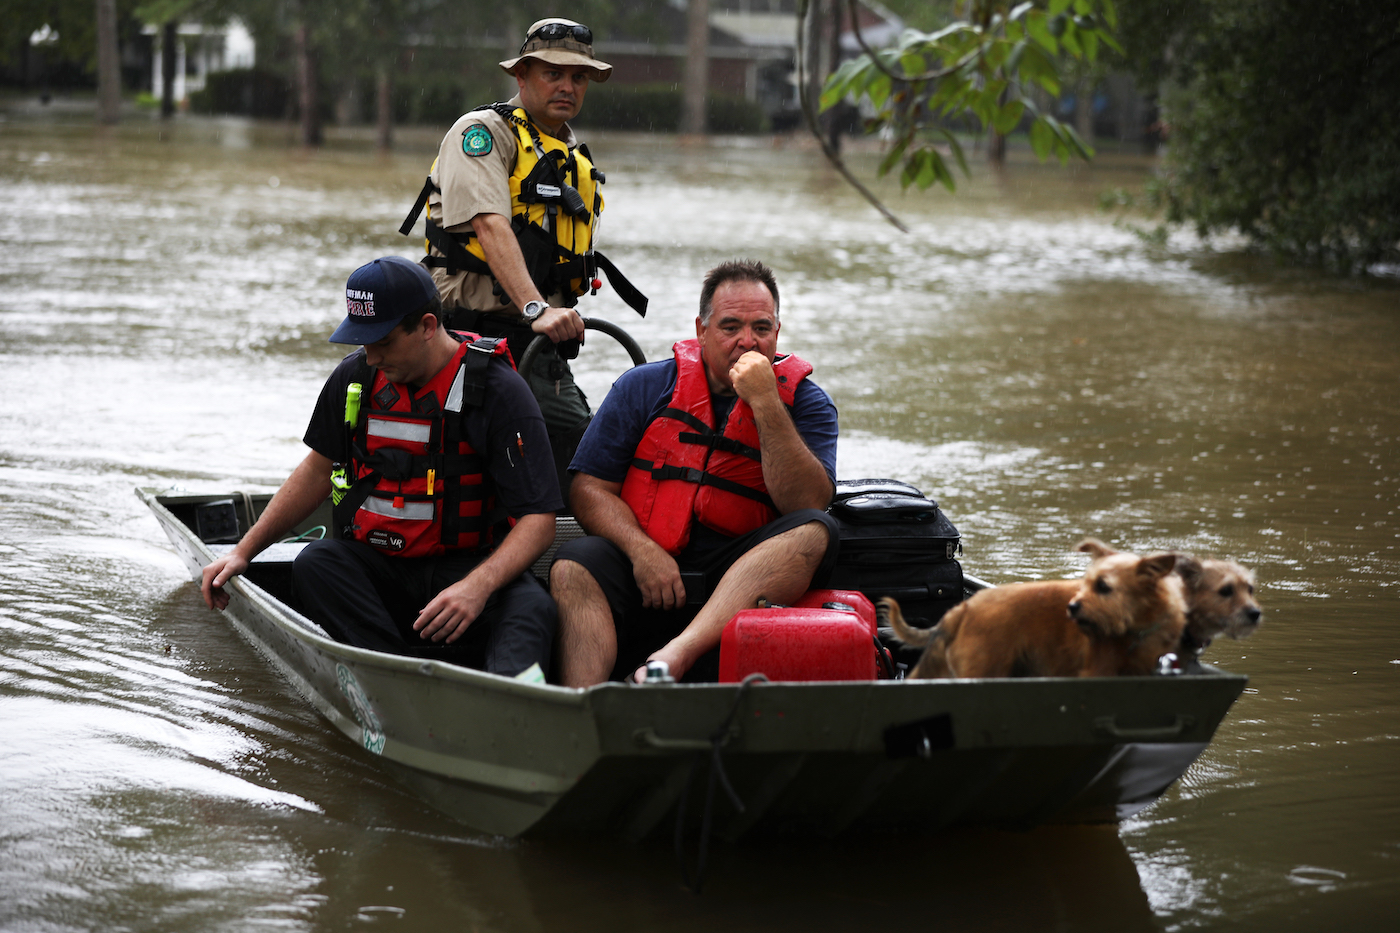 The Harris County Sheriff's Office and other first responders rescue people from floodwaters in Huffman, TX during Tropical Storm Imelda on September 20, 2019. Huffman experienced 22.21 inches of rain during the storm. Photo by Sharon Steinmann/Harris County Sheriff's Office